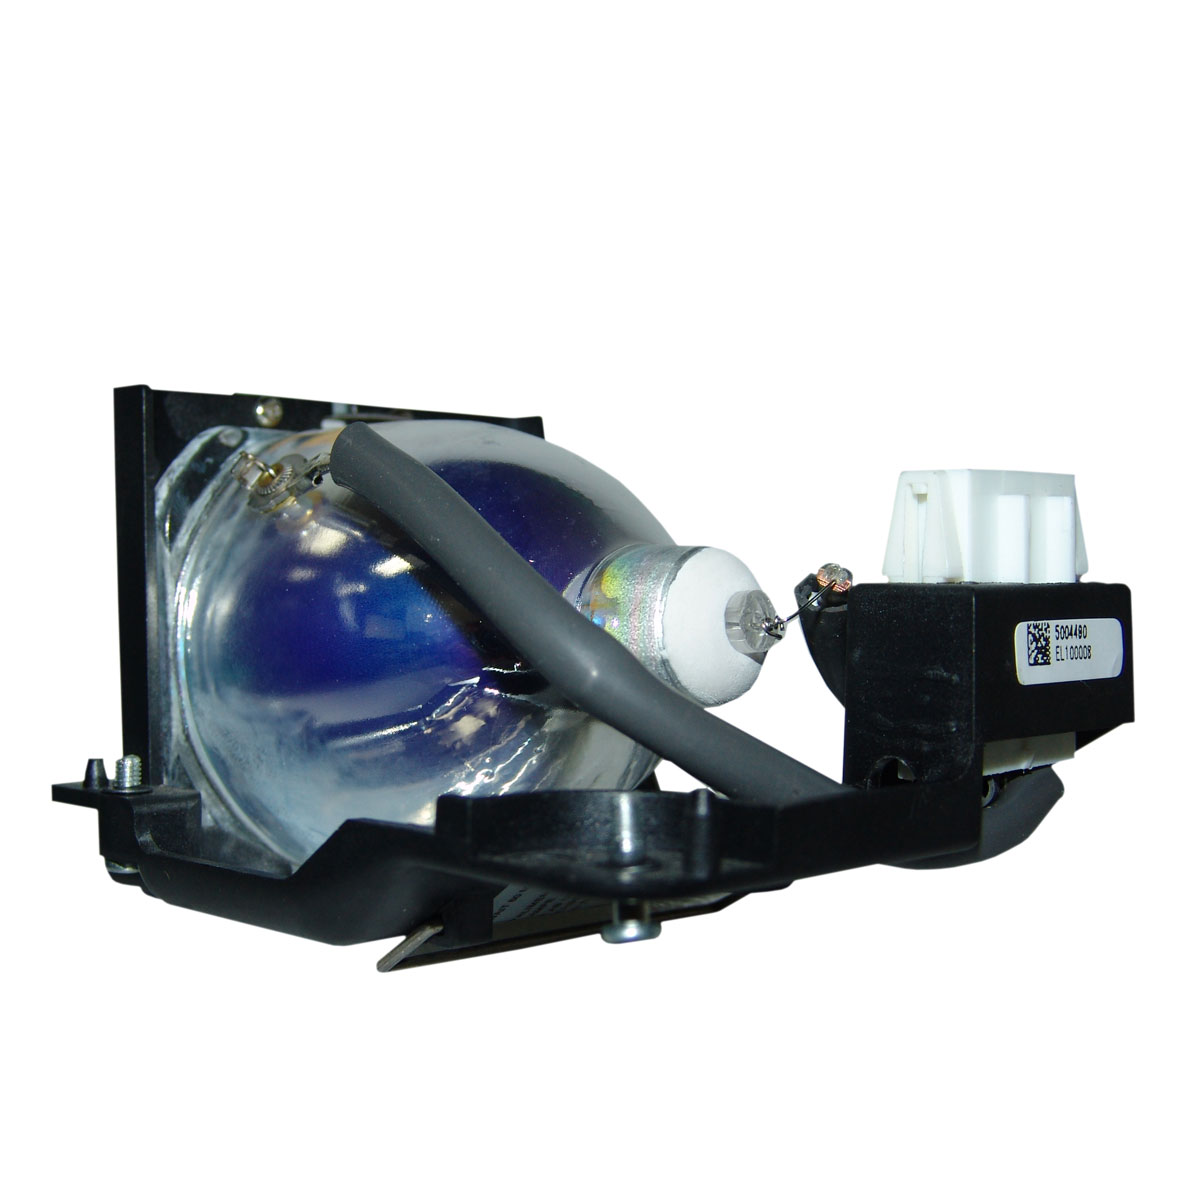 Lutema Economy for PLUS U2-Traveler CS11 Projector Lamp (Bulb Only) - image 4 of 5